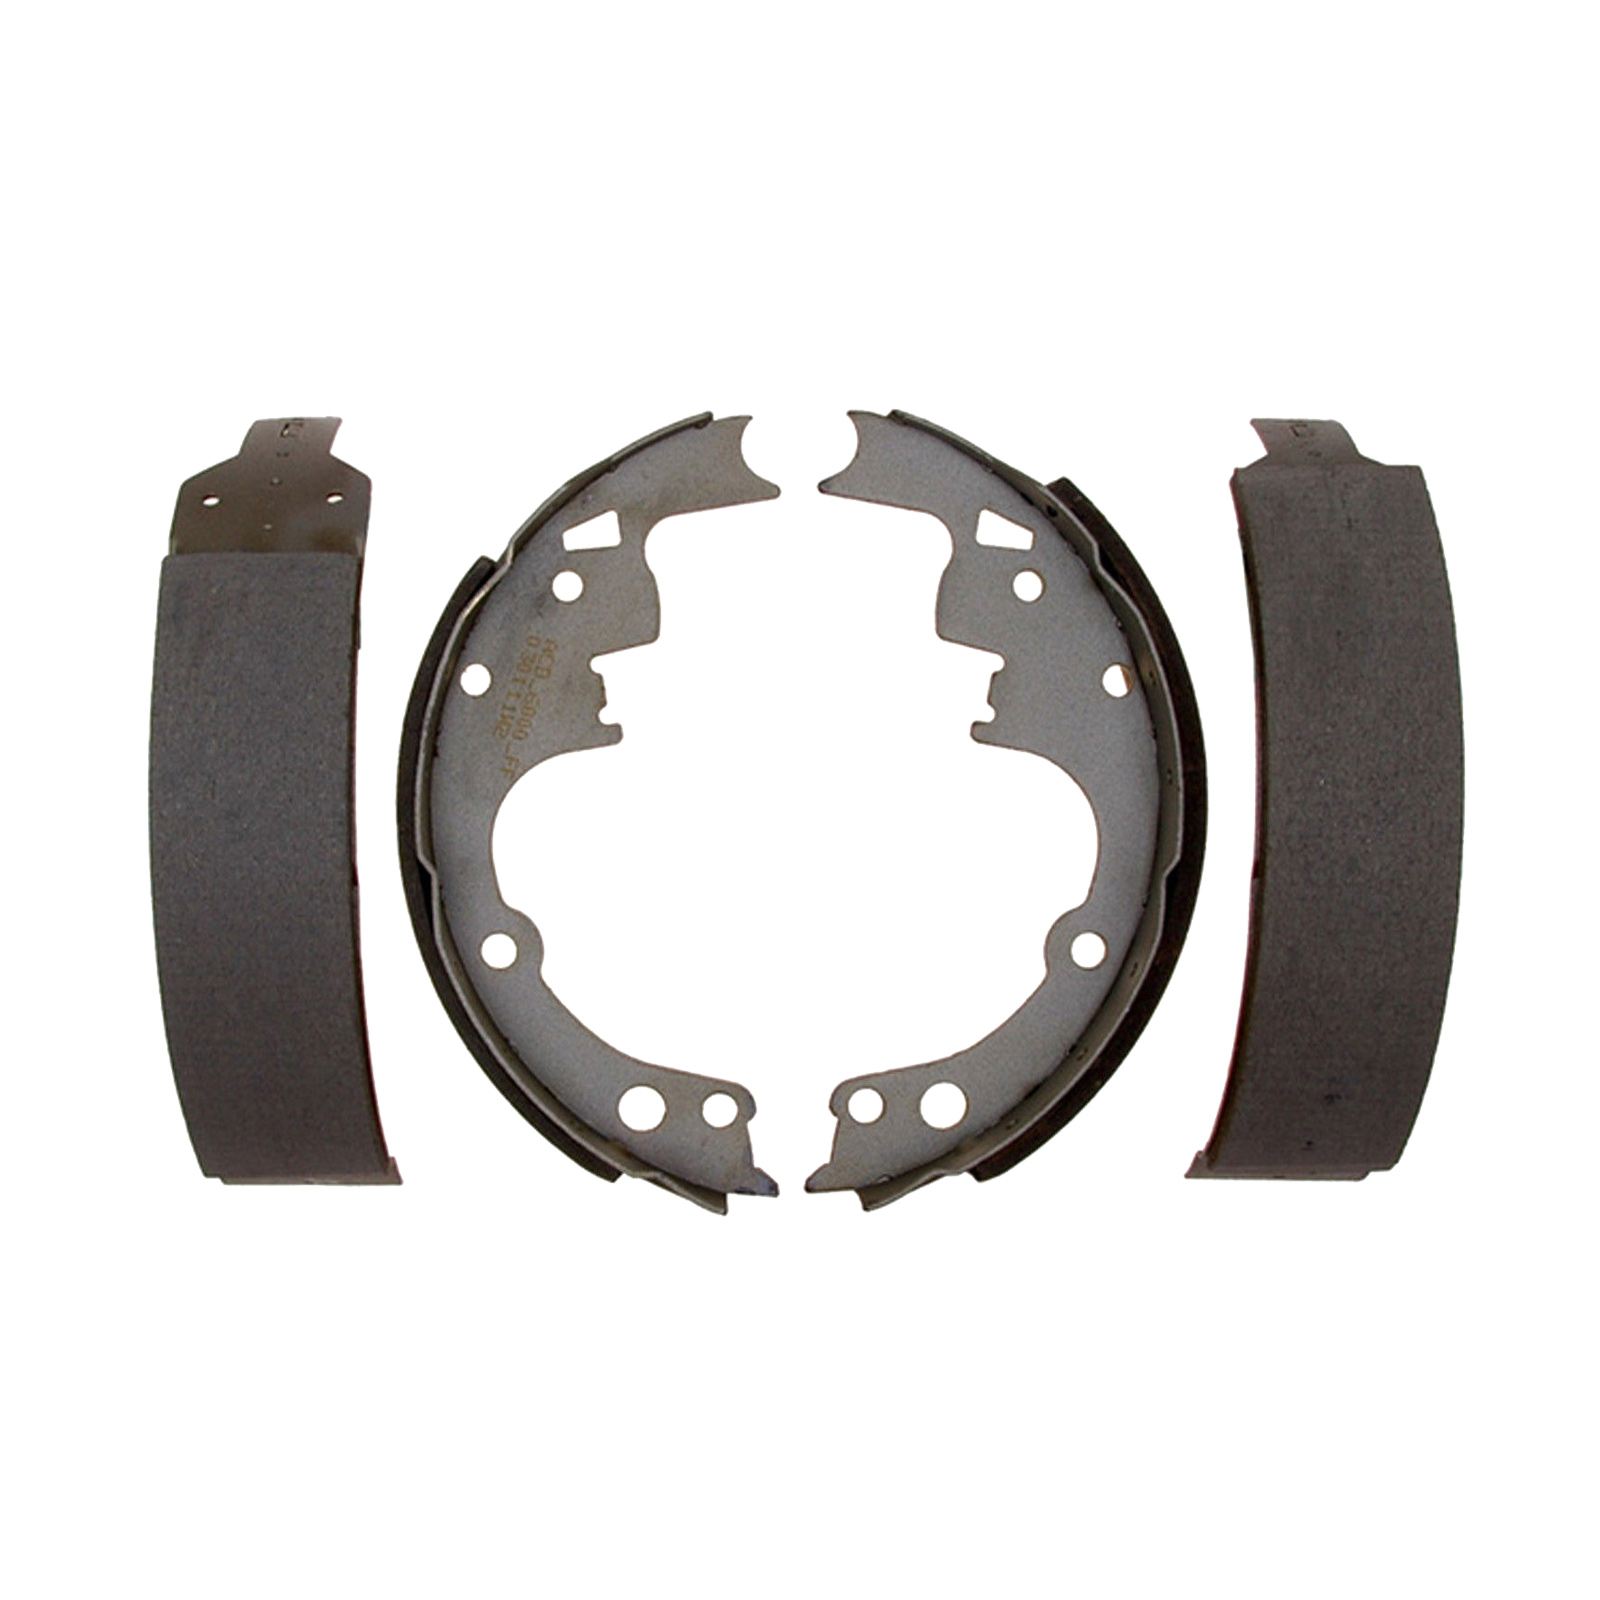 Front Drum Brakes : Front brake rotor pads and rear drum shoes fit